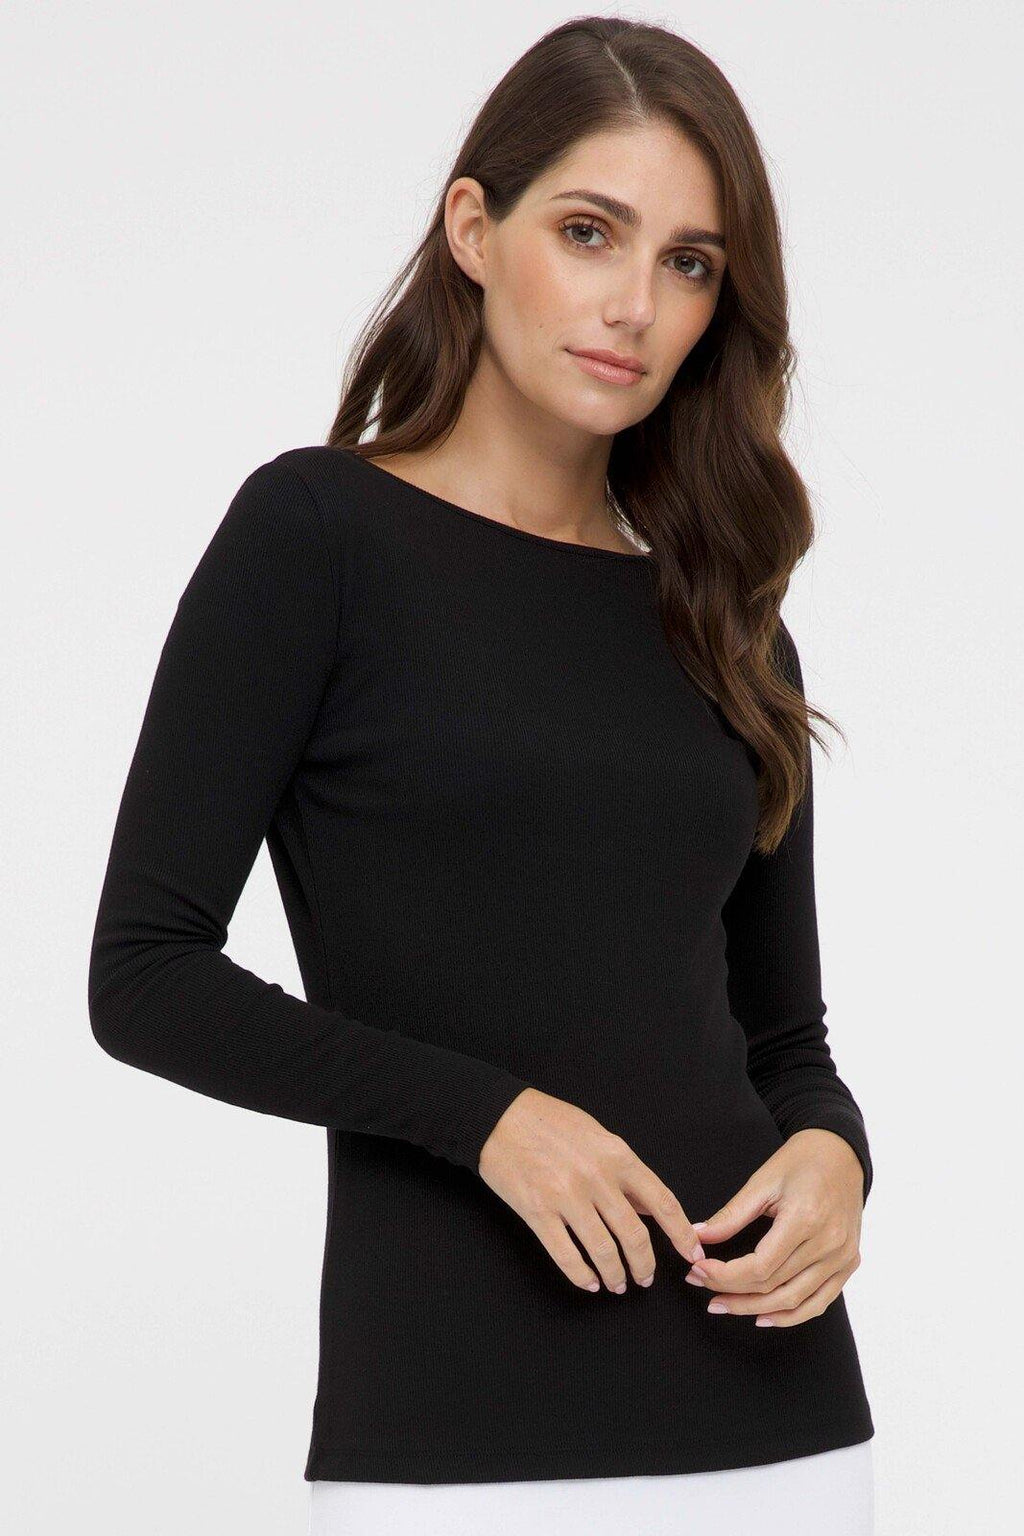 Bamboo Body Ribbed Boatneck Top - Black | Buy Online at Weekends